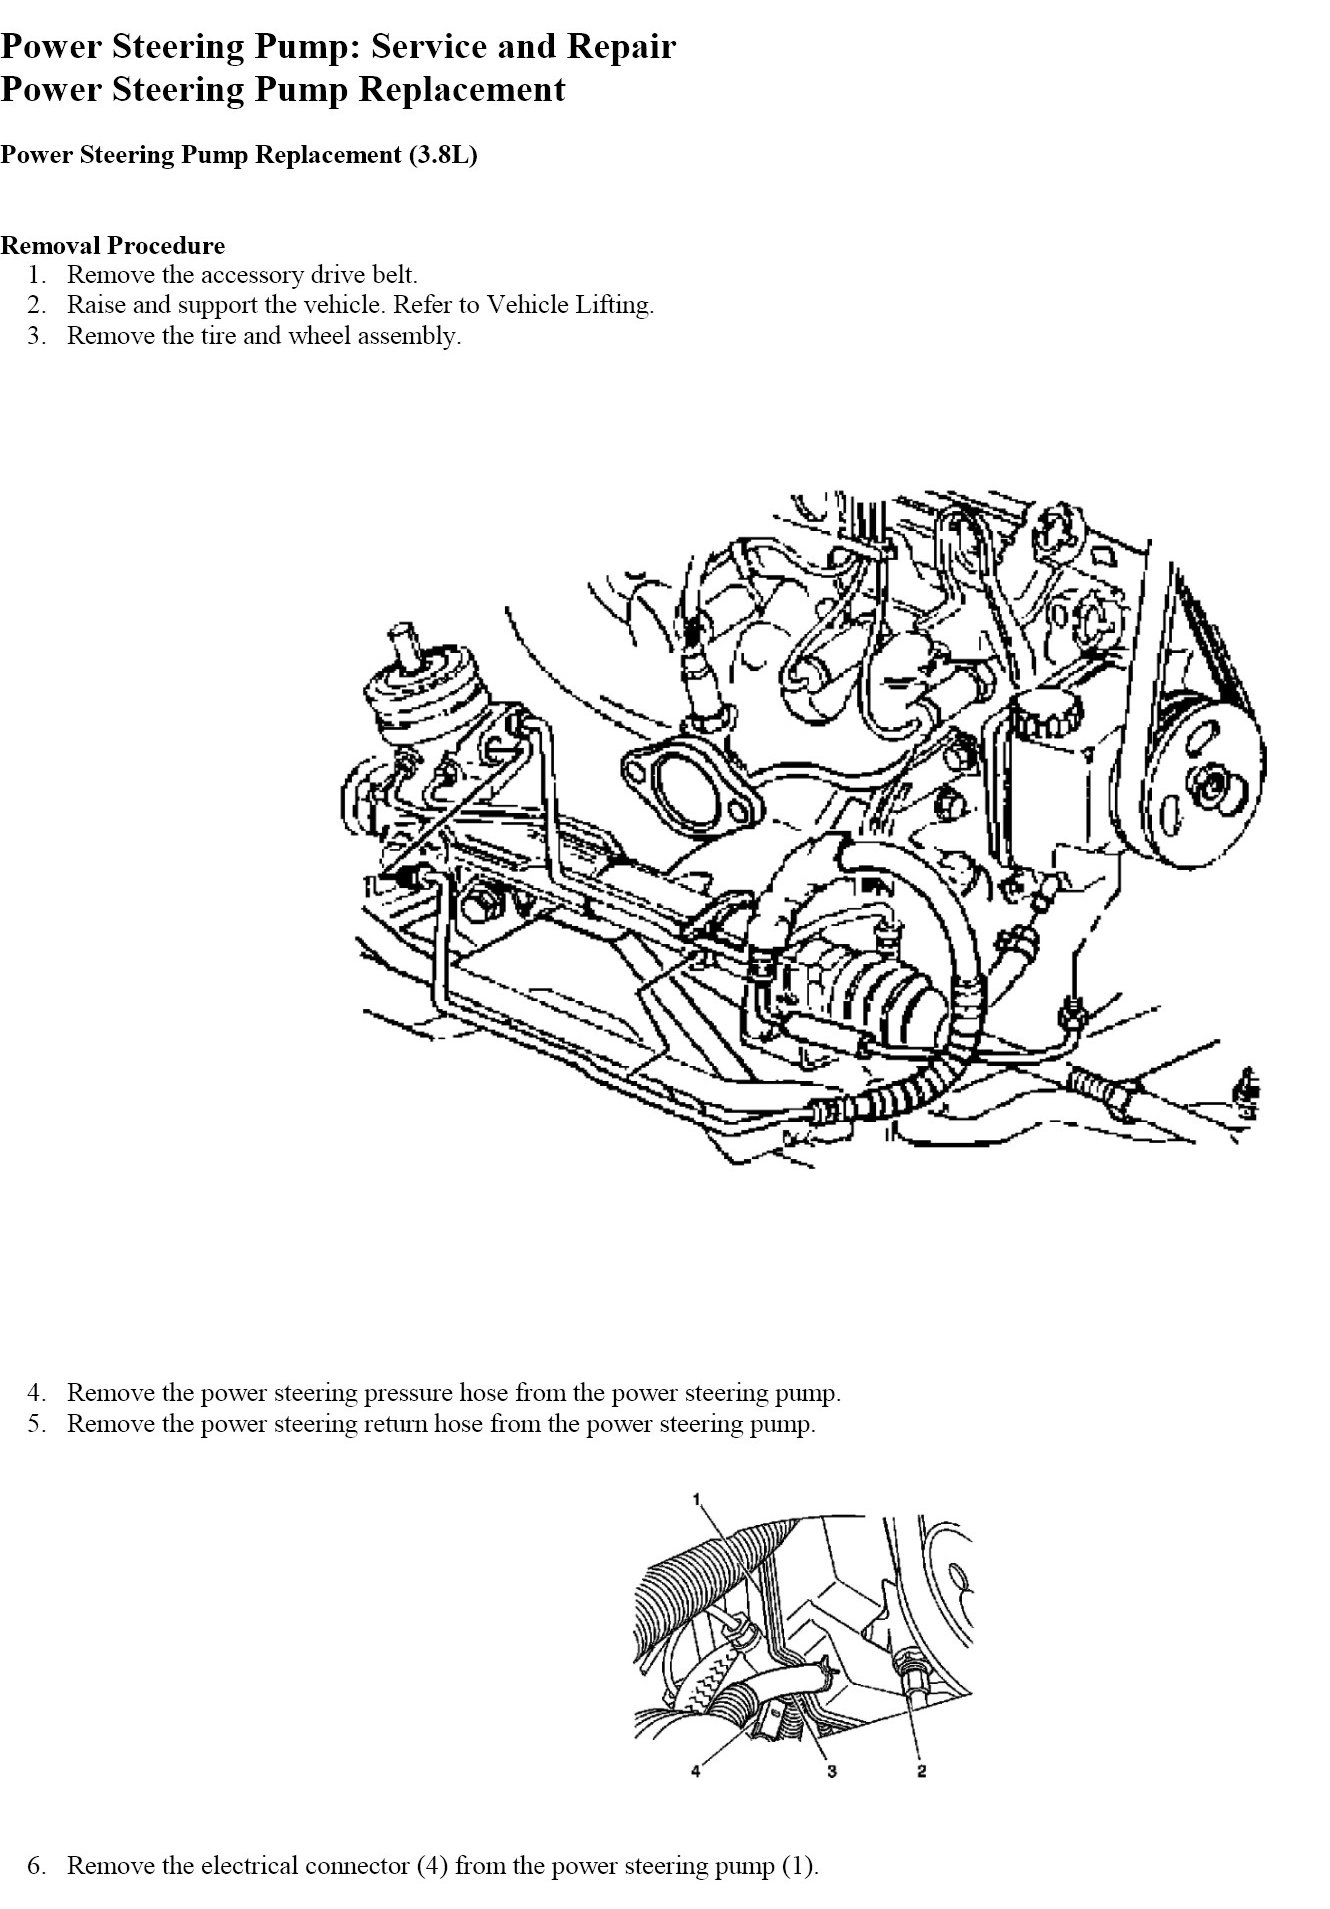 Ford Escort 1998 Ford Escort Locating Tension Pulley And Serpentine Bel further 2012 Ford Escape Wiring Diagram further Starter Location On 97 Buick Lesabre besides 2008 Honda Accord Parts Catalog moreover 2004 Pontiac Grand Am Engine Diagram. on 2006 buick lucerne serpentine belt diagram v6